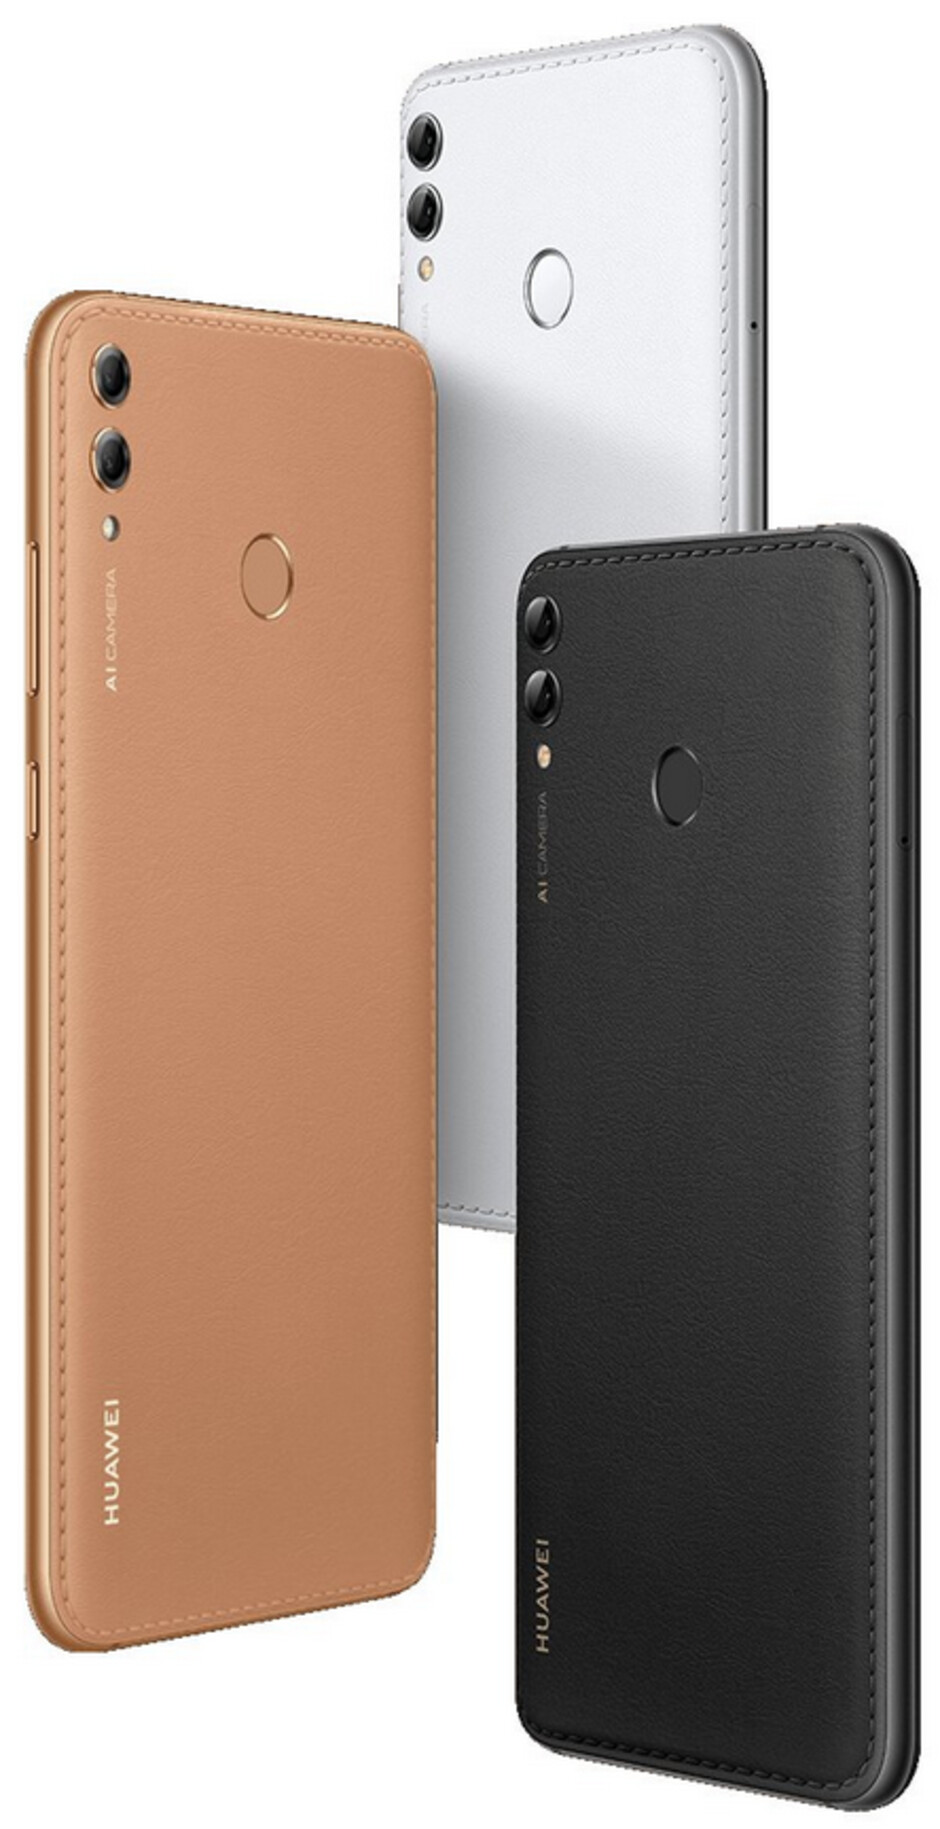 The Huawei Enjoy Max is a rebranded Honor 8X Max - Huawei Enjoy Max and its 7.12-inch screen leak; phone is a rebranded Honor 8X Max